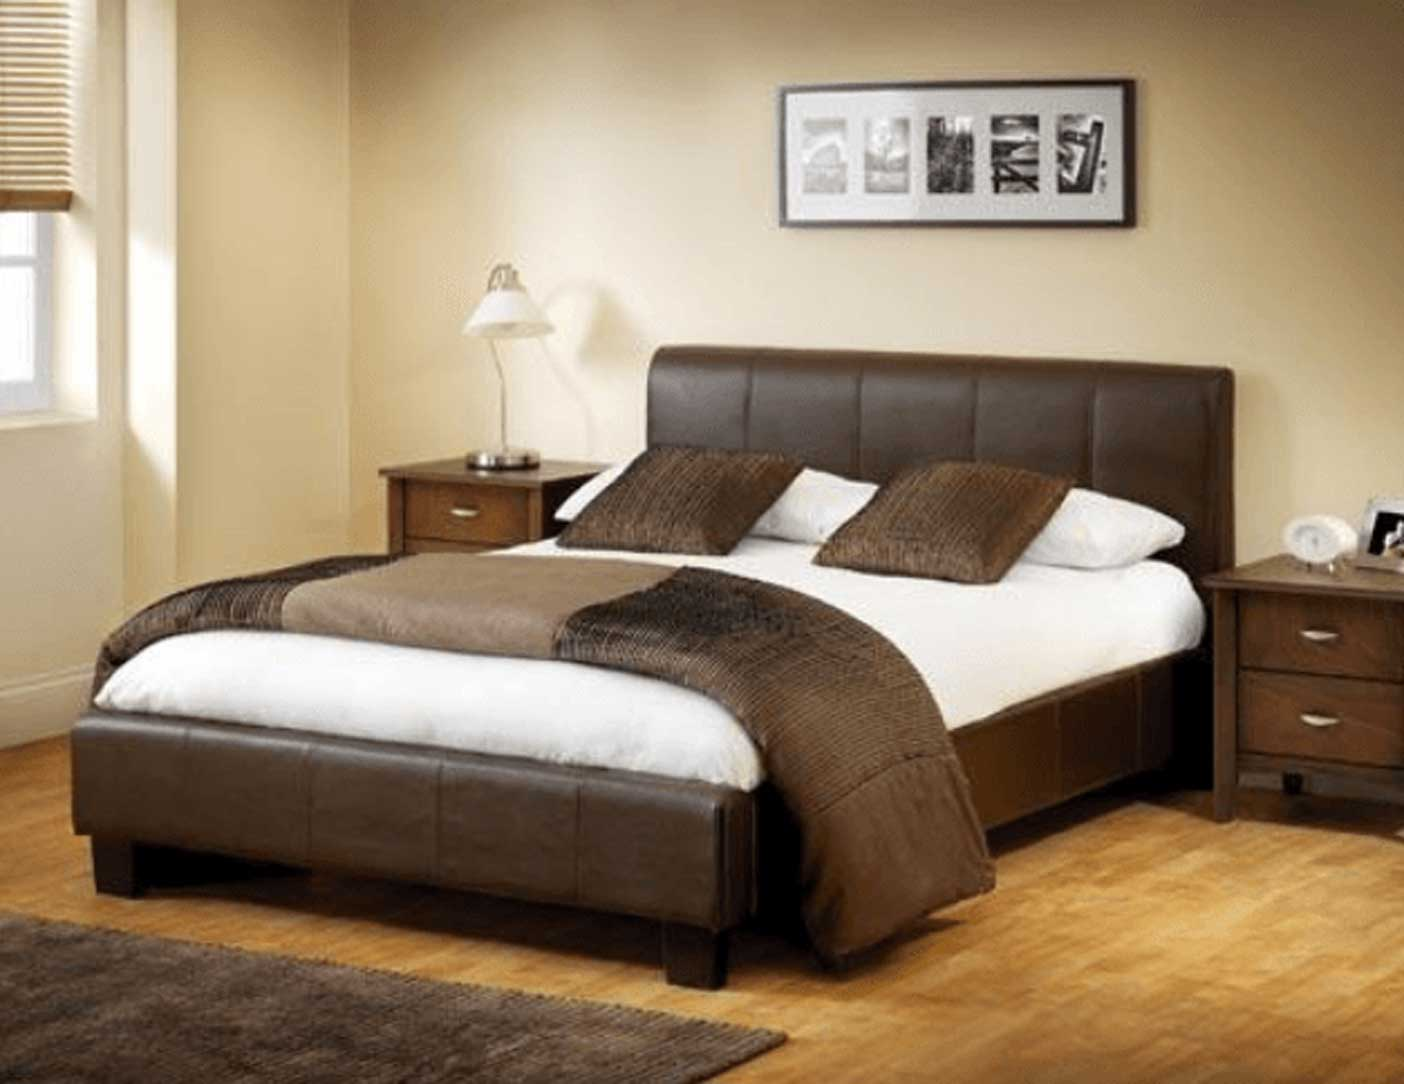 Bedroom Furniture Set in Lagos Nigeria